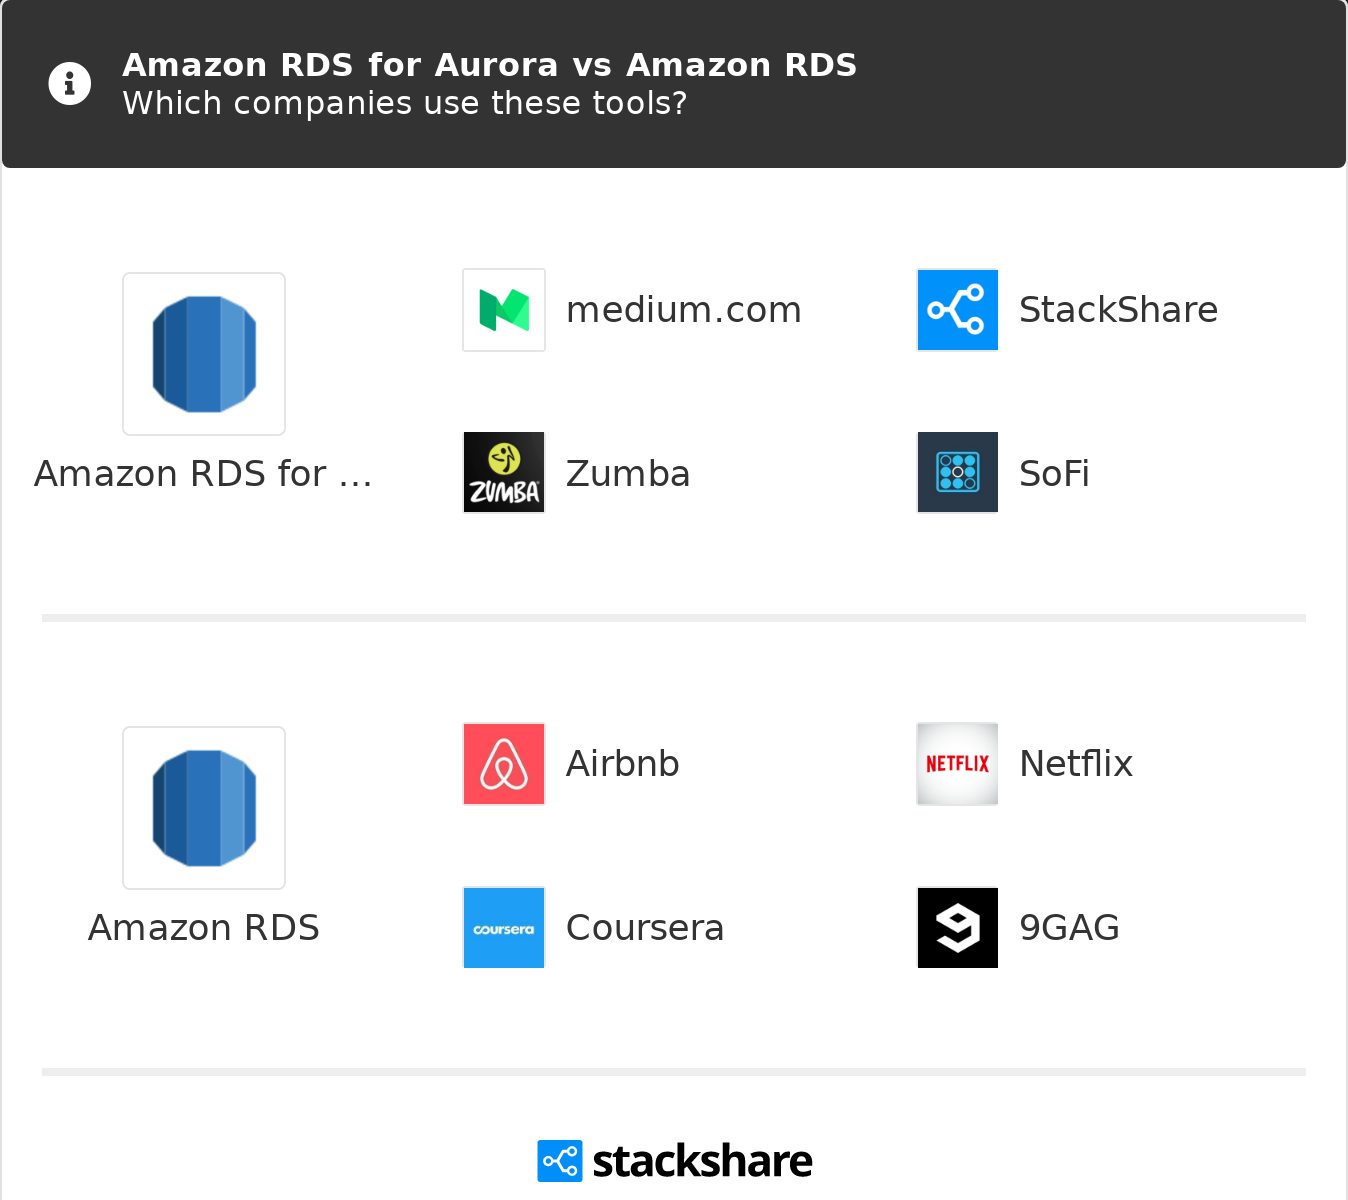 Amazon RDS for Aurora vs Amazon RDS | What are the differences?